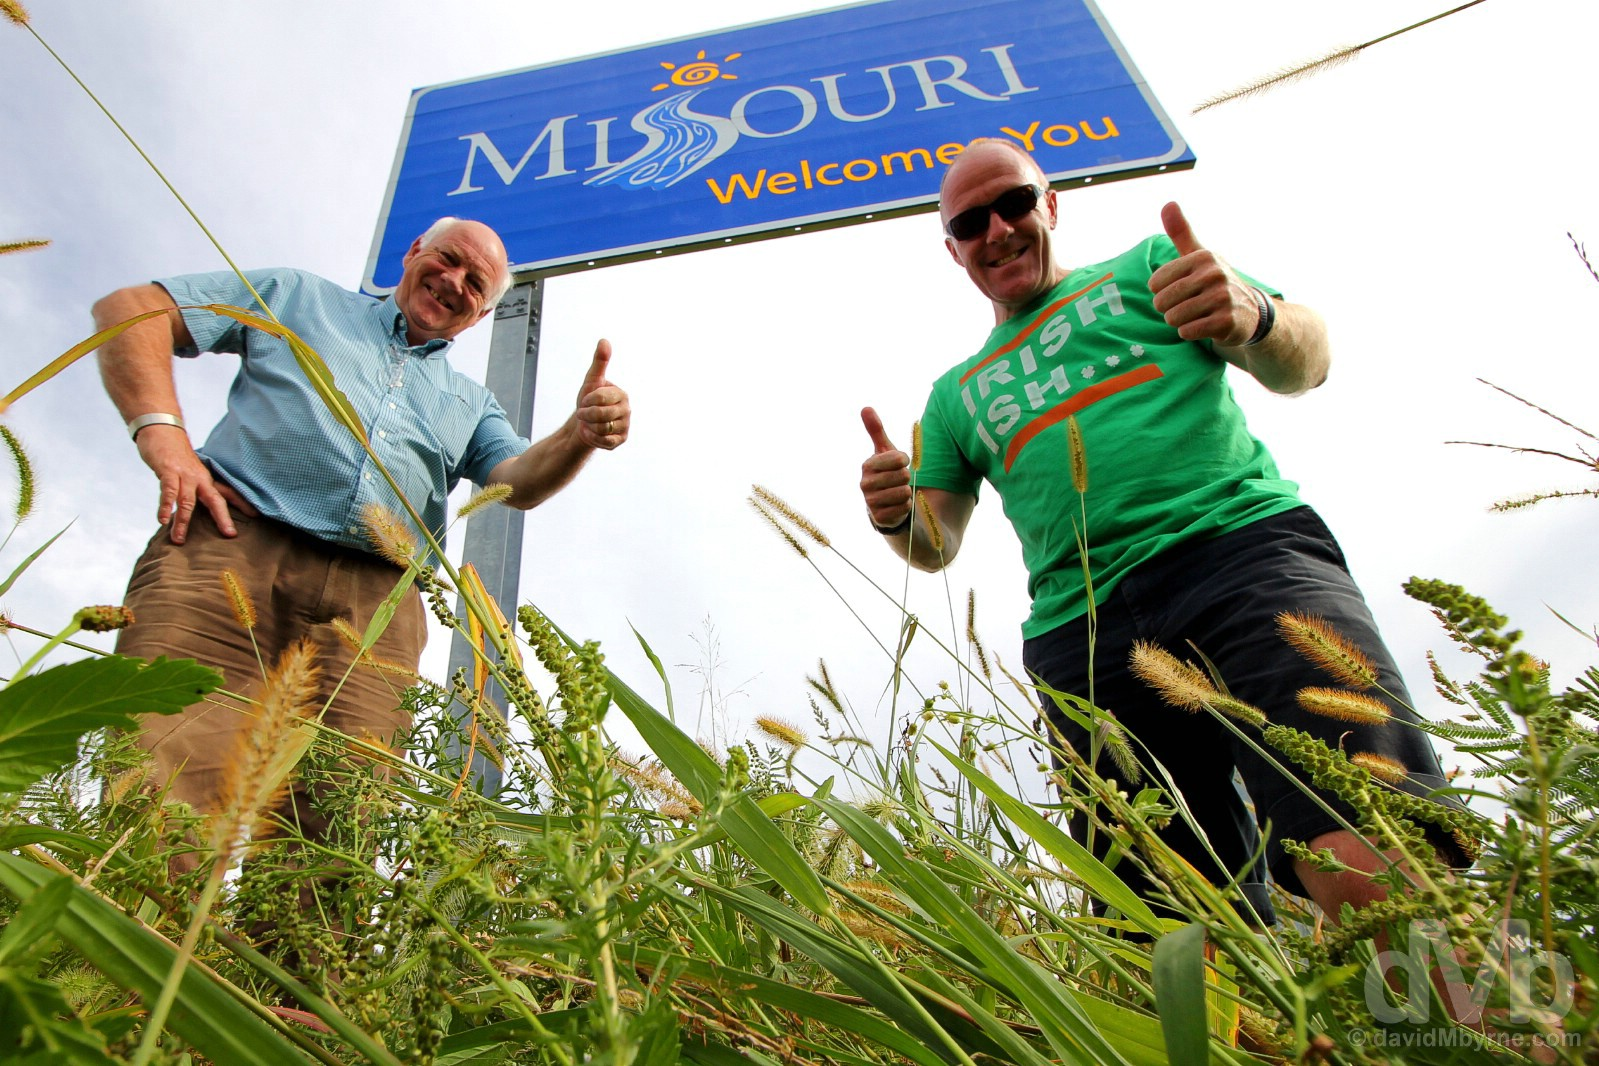 Welcome to Missouri. At the Iowa/Missouri state line, Interstate 29, USA. September 16, 2016.